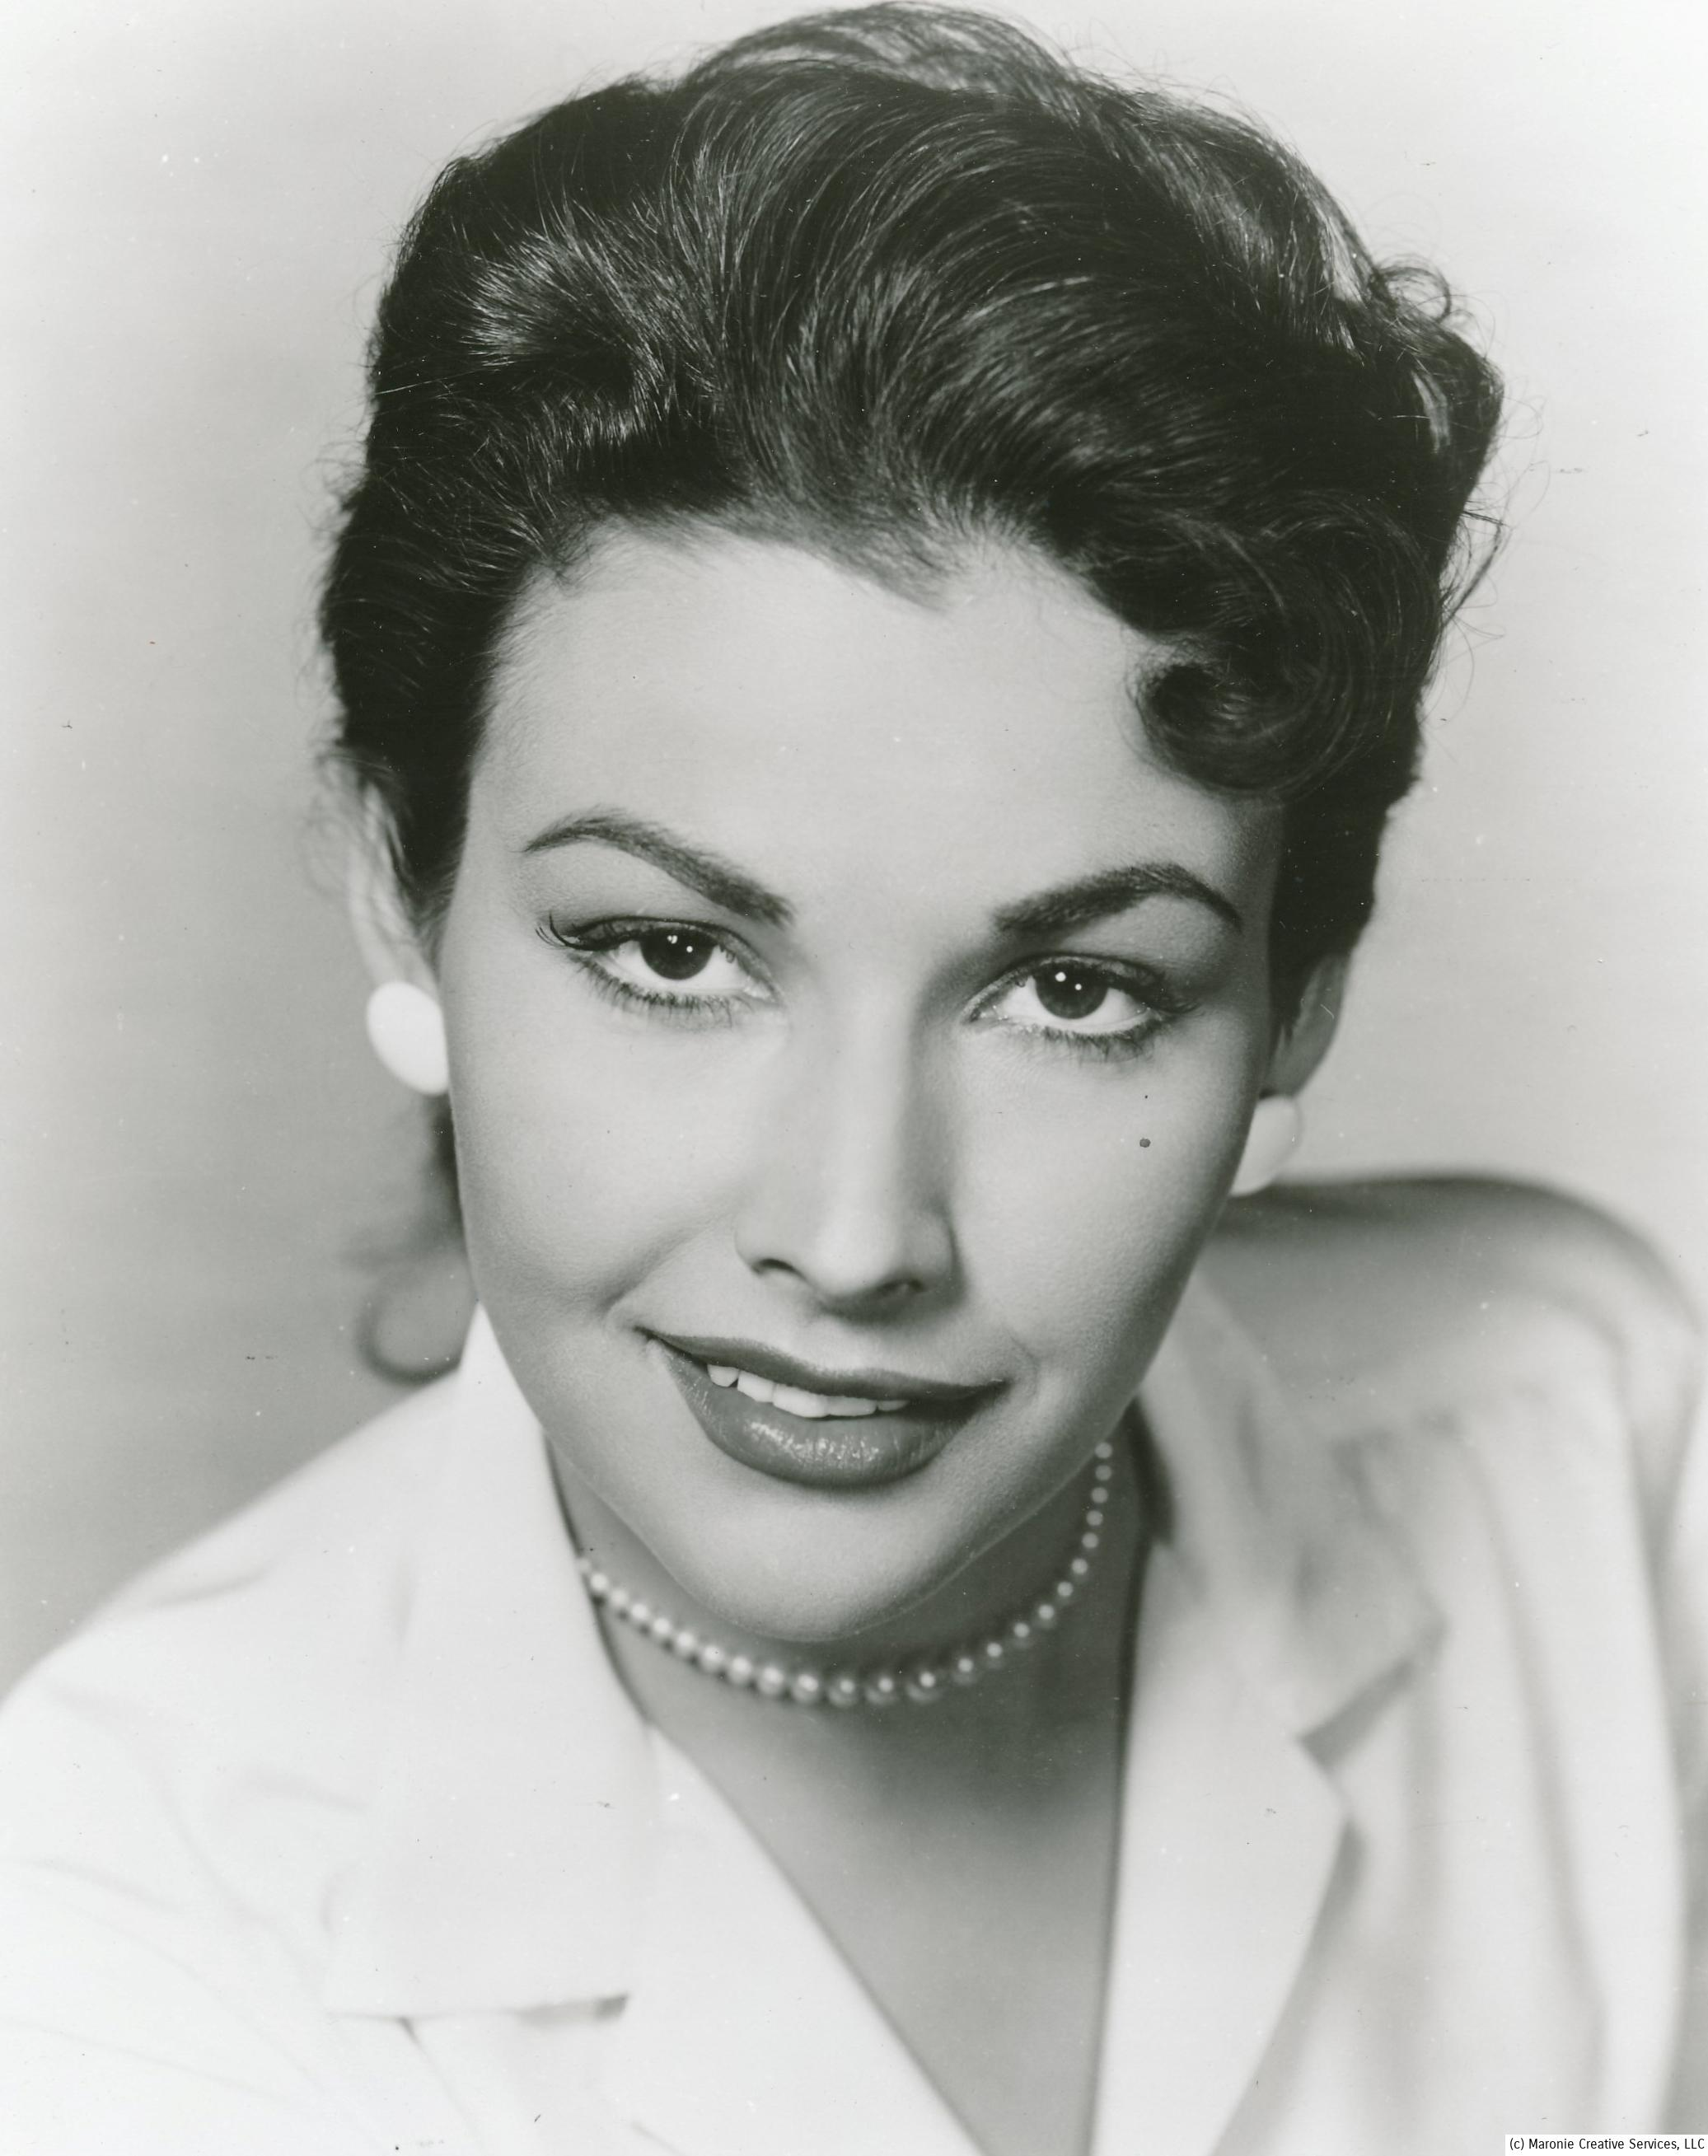 Actress Mara Corday was an Universal contract player in the 1950s. The studio threw her into a variety of different films and roles, without making much of a splash. She became friends with fellow-player Clint Eastwood, and the  filmmaker uses her in bit parts in his popular movies. In addition to Tarantula, Corday appeared in the genre classics Black Scorpion and the laughable The Giant Claw. In this film, Corday plays the stereotypical lady scientist who the here can't resist!